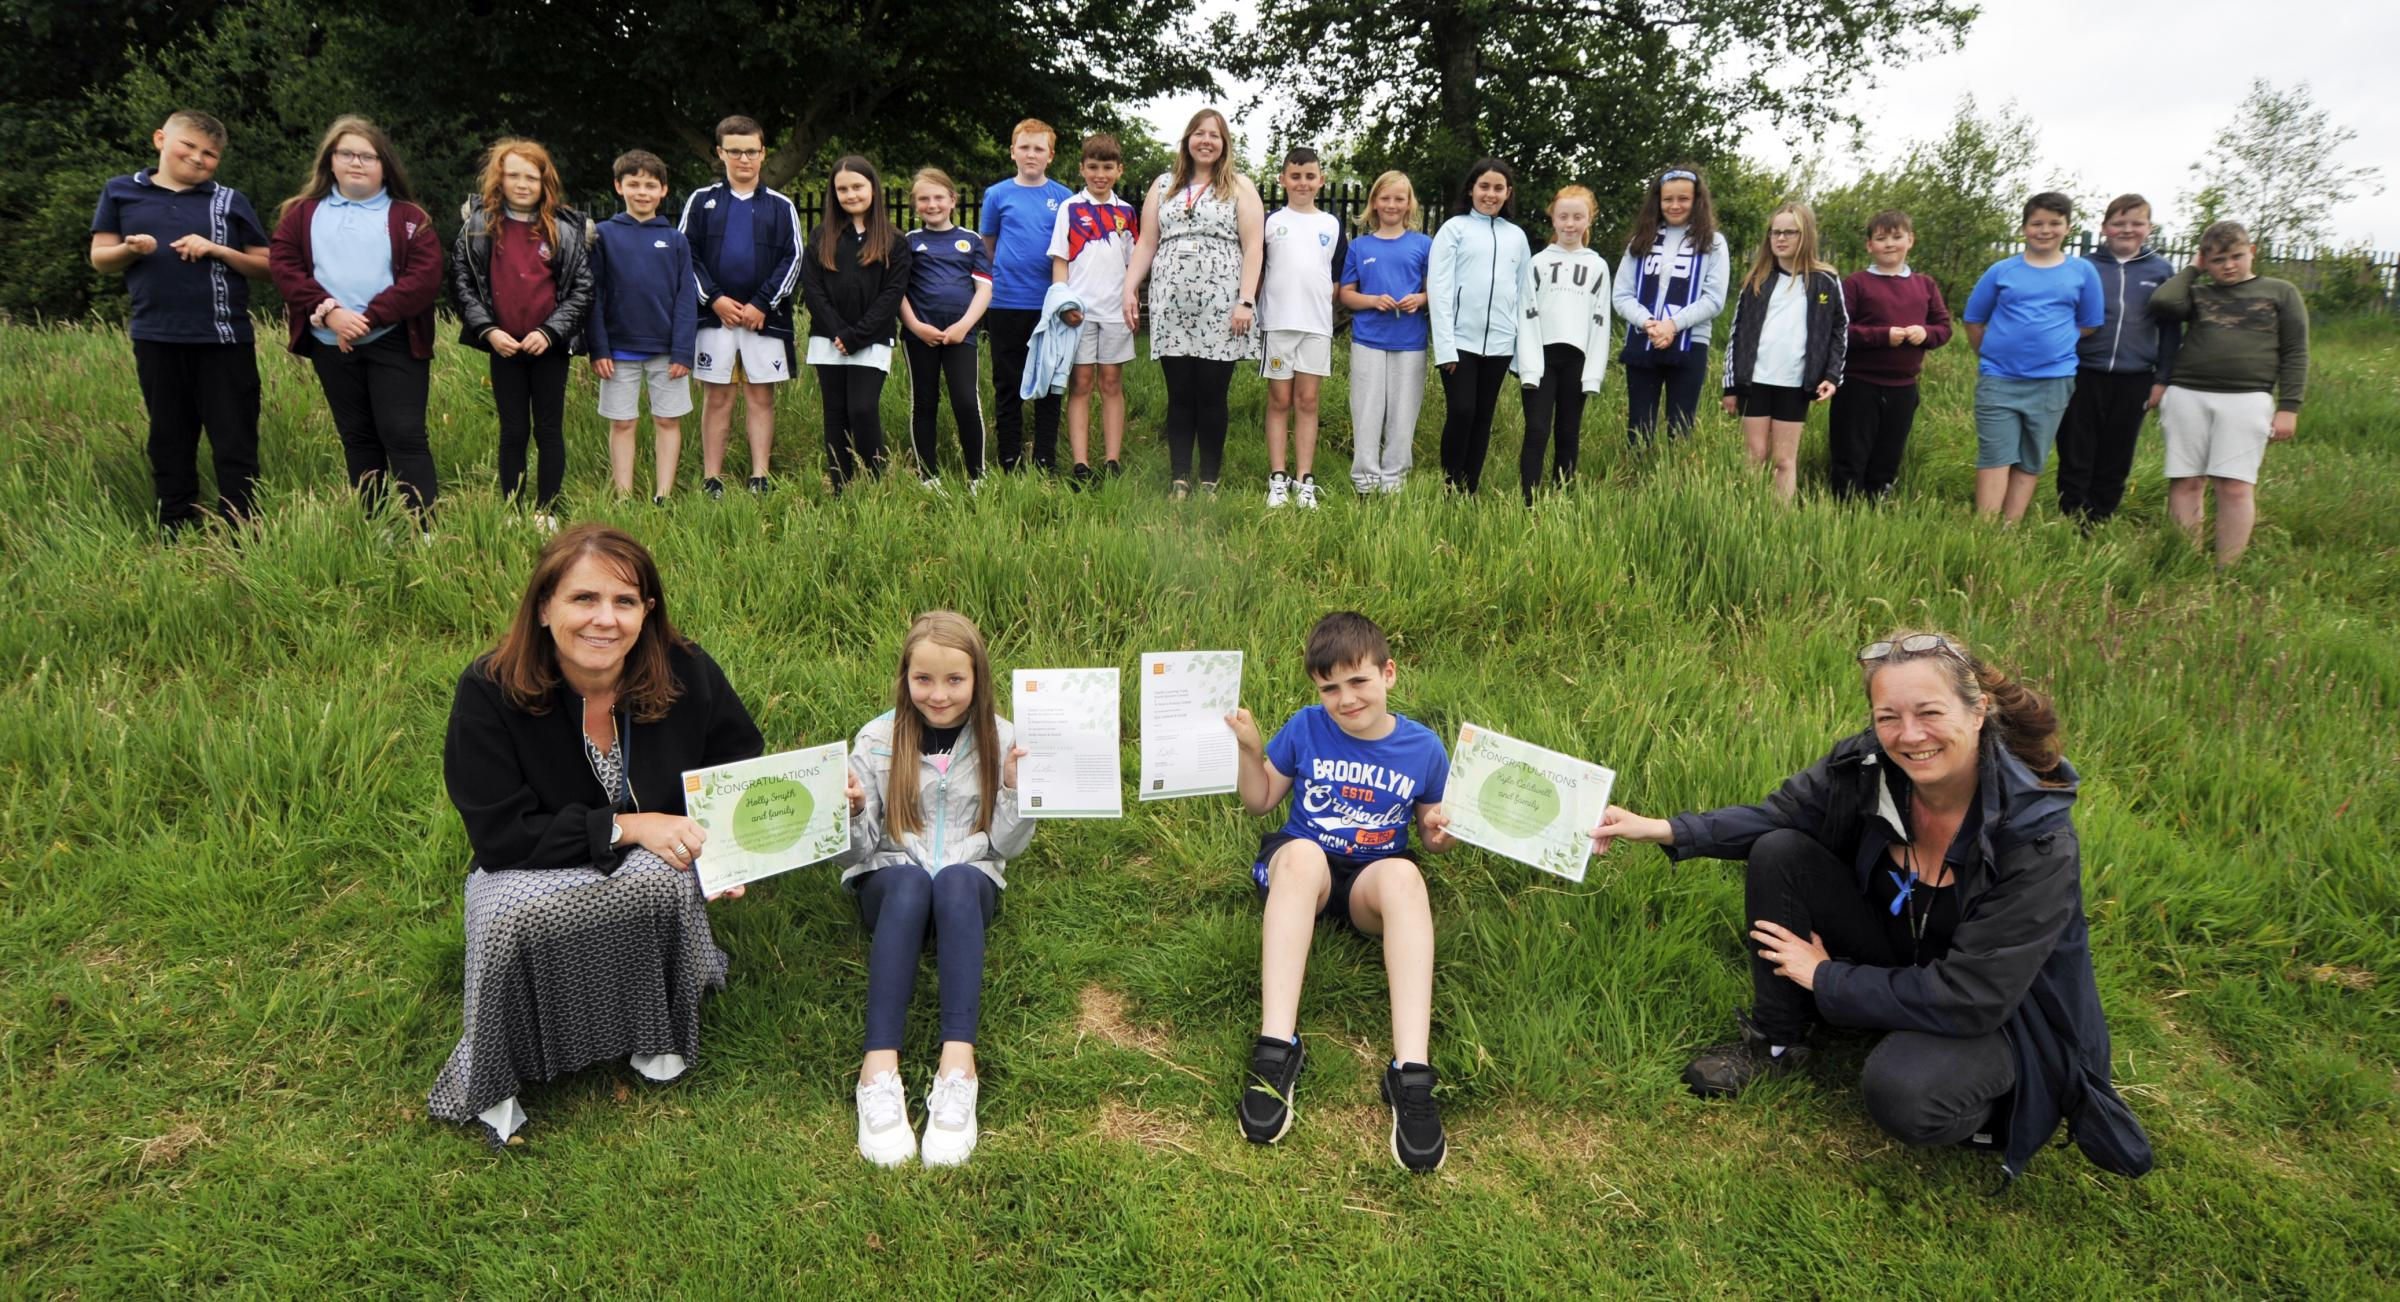 Ardrossan: St Peter's pupils given certificates for their environmental challenge